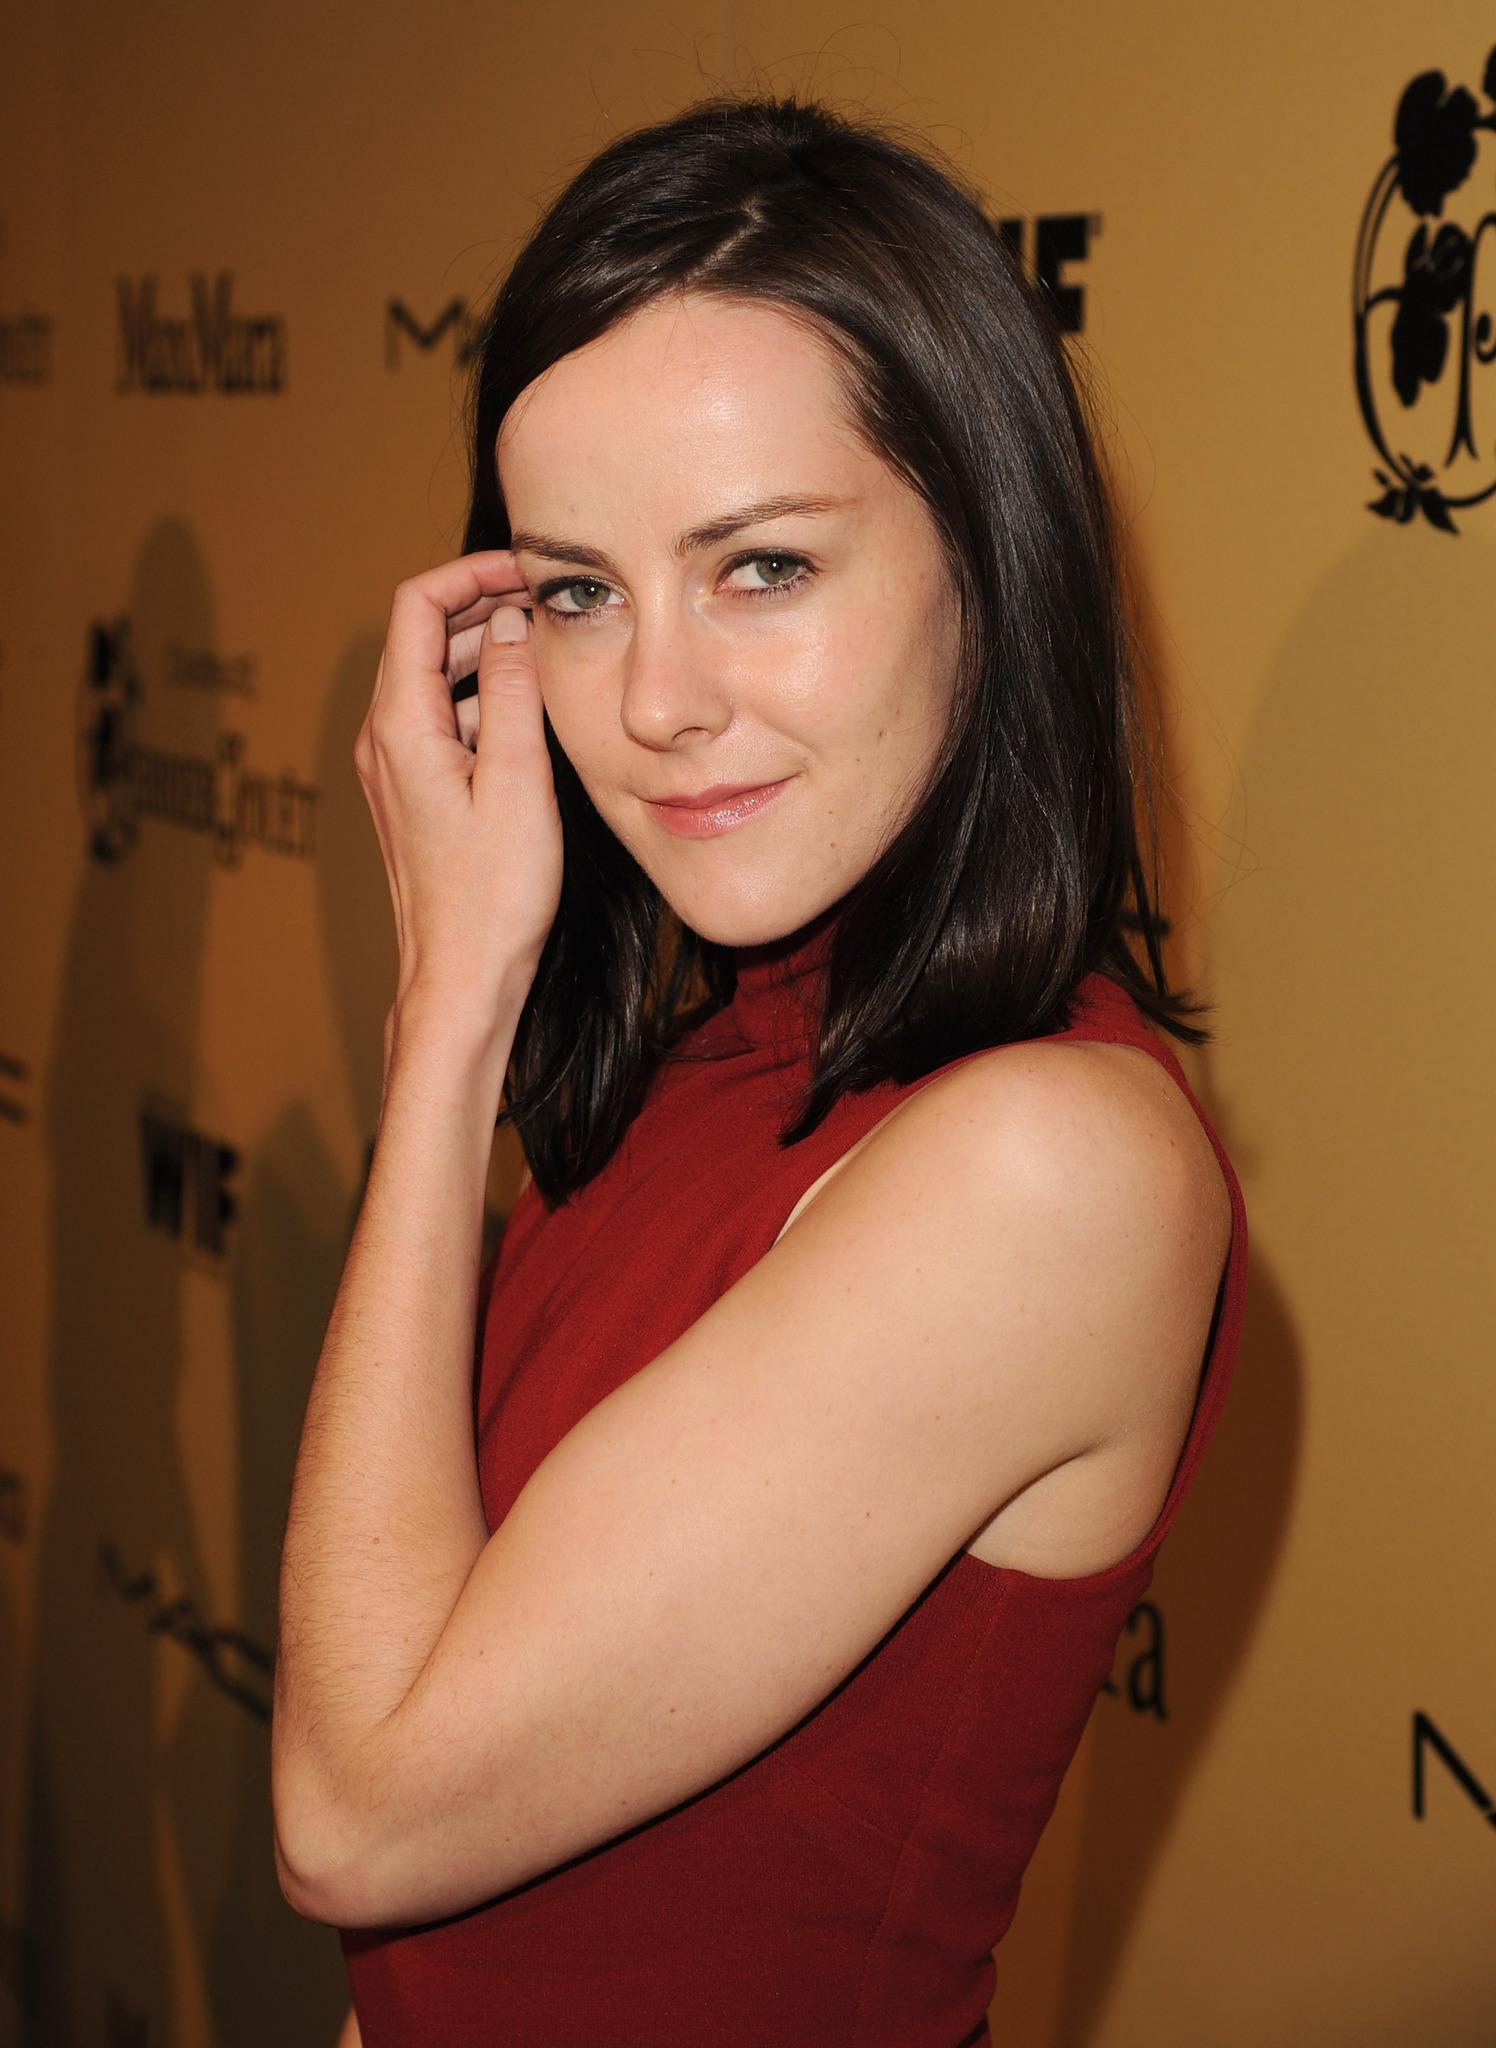 Jena Malone hd wallpapers